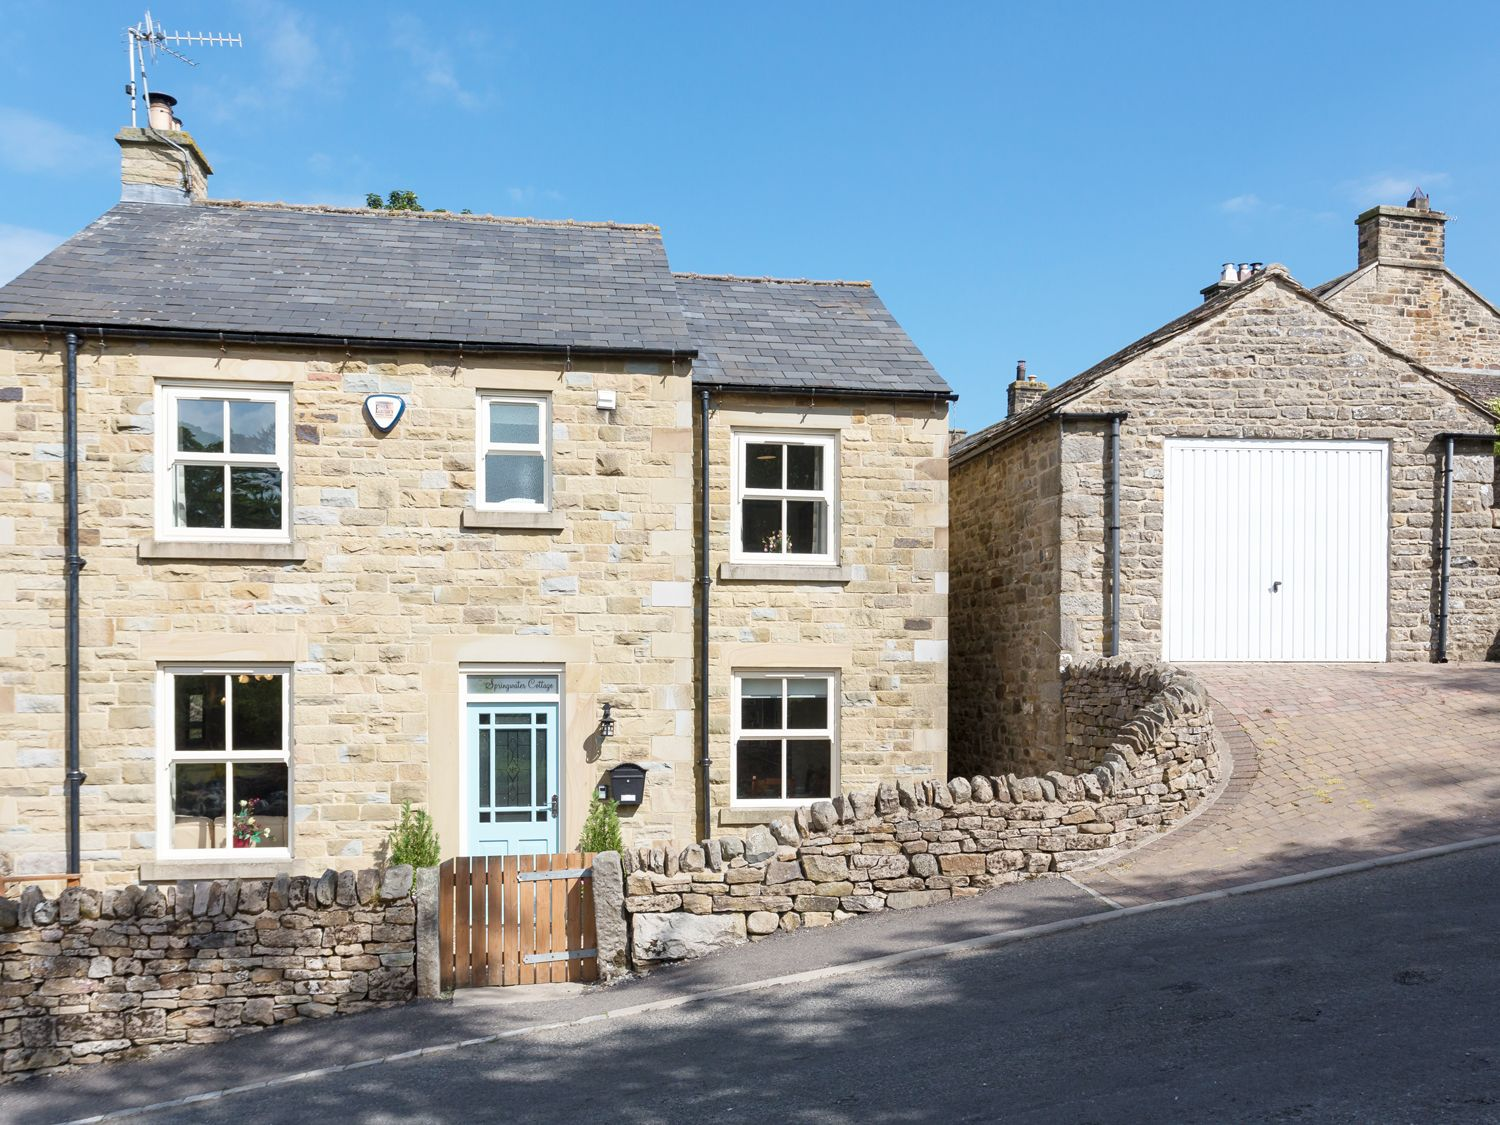 1 Springwater View - Yorkshire Dales - 914093 - photo 1